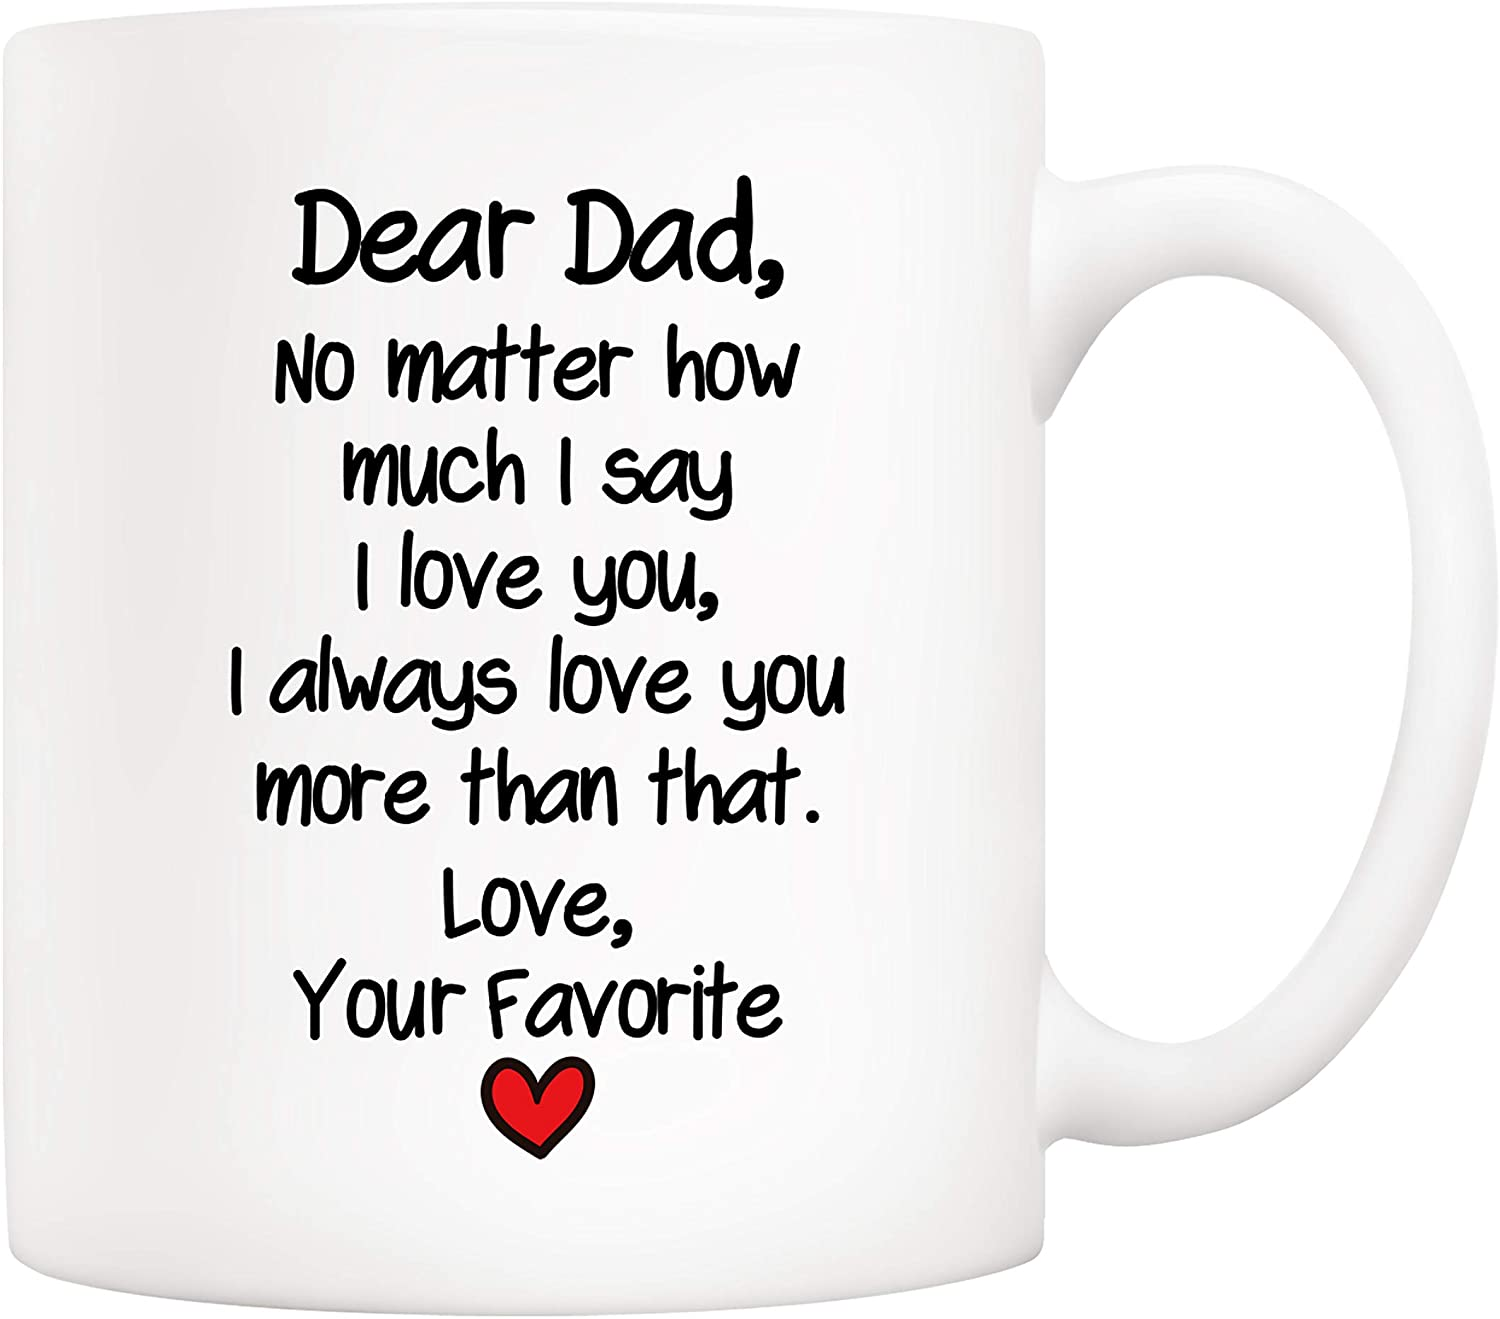 5Aup Funny Father's Day Dad Gifts, Dear Dad No Matter How Much I Say I Love You, I Always Love You More Than That. Love, Your Favorite Coffee Mug, Father Cup from Daughter Son 11 Oz